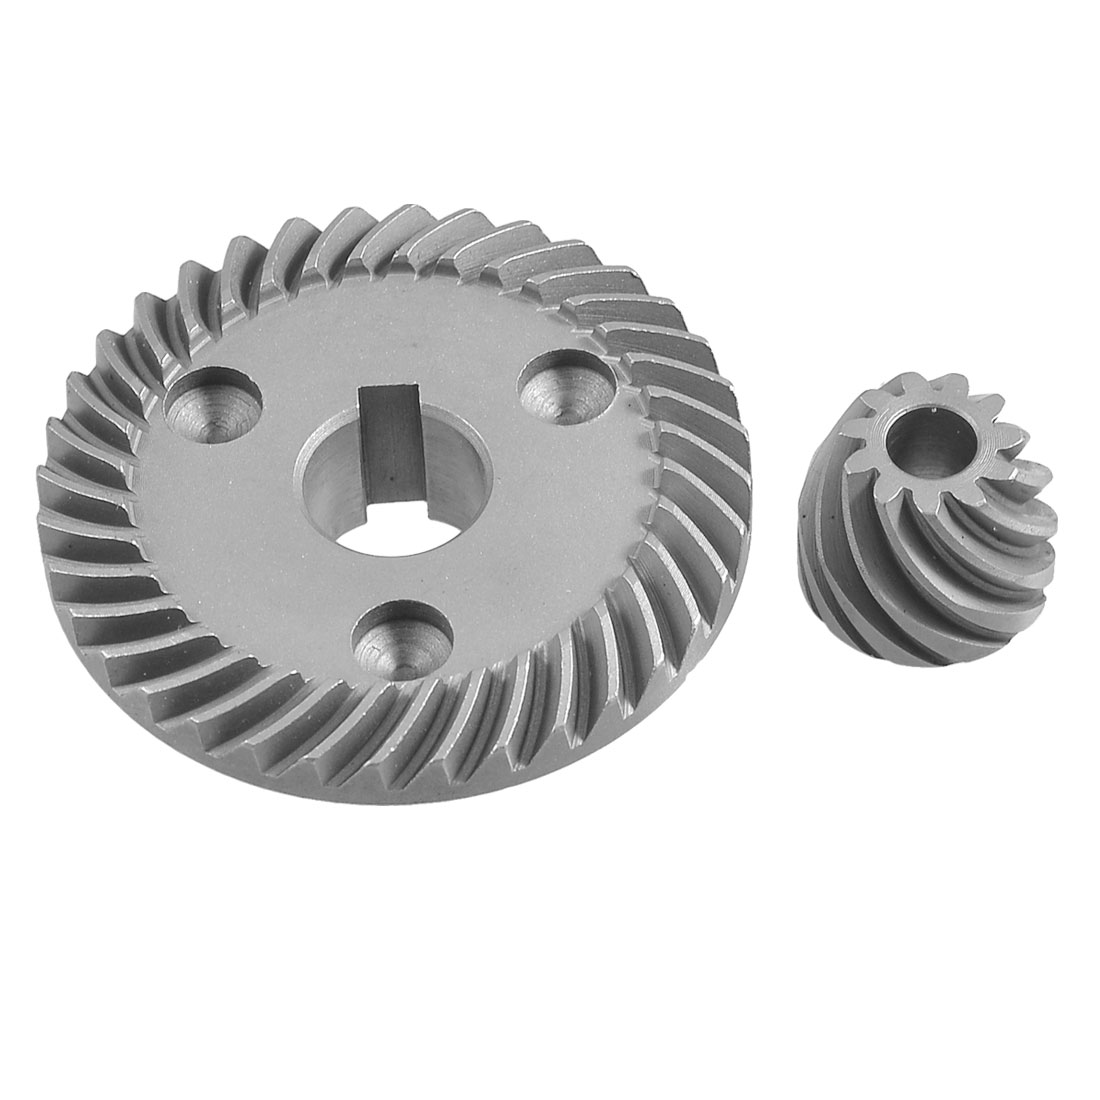 Slot Hole Ring Gear Spiral Bevel Pinion Set for Makita 9553 Angle Grinder